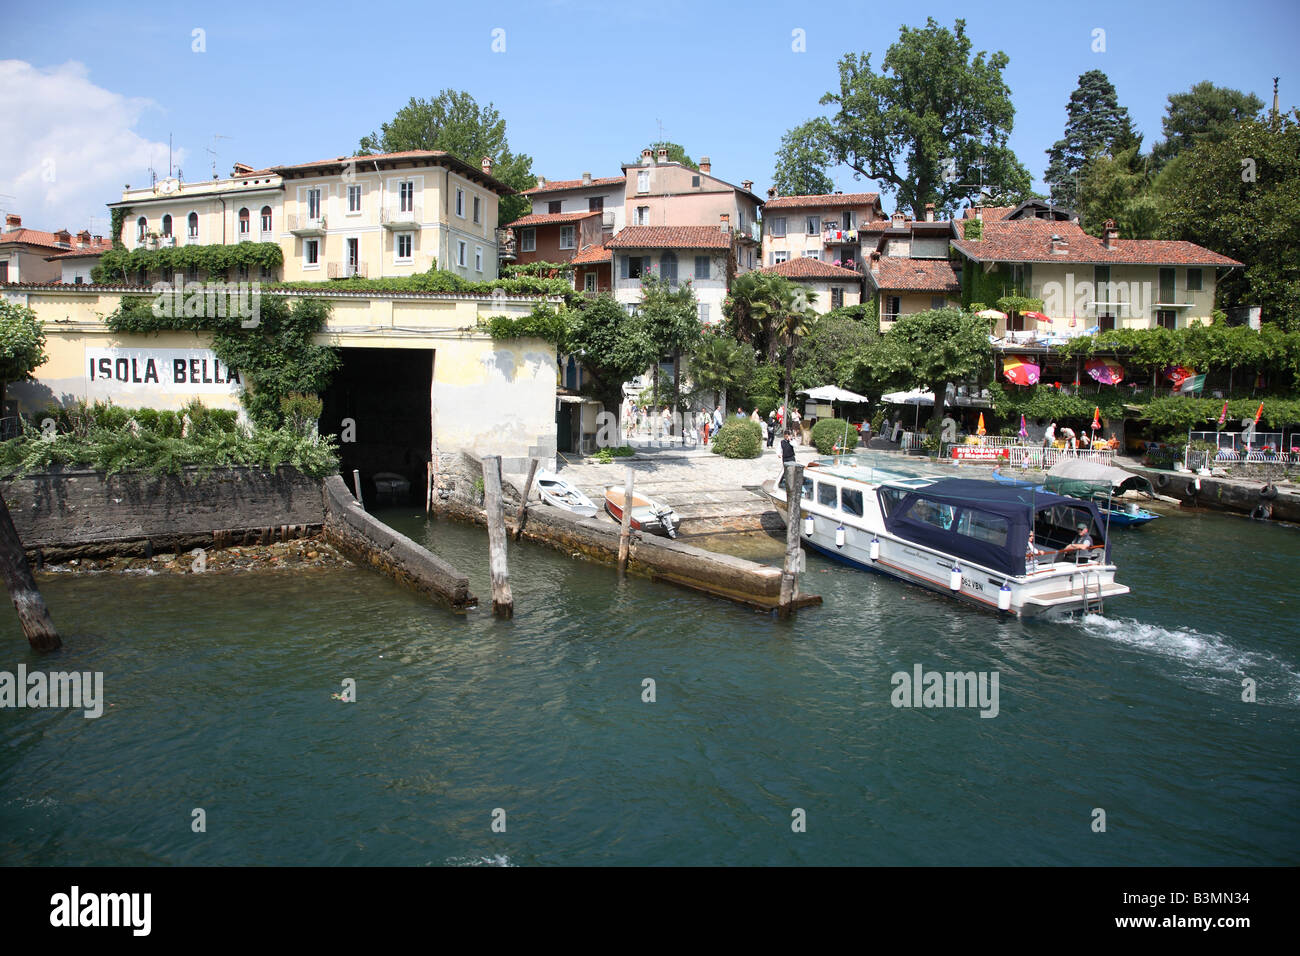 Isola Bella is considered the most picturesque of the Borromean Islands in Lake Maggiore Italy - Stock Image